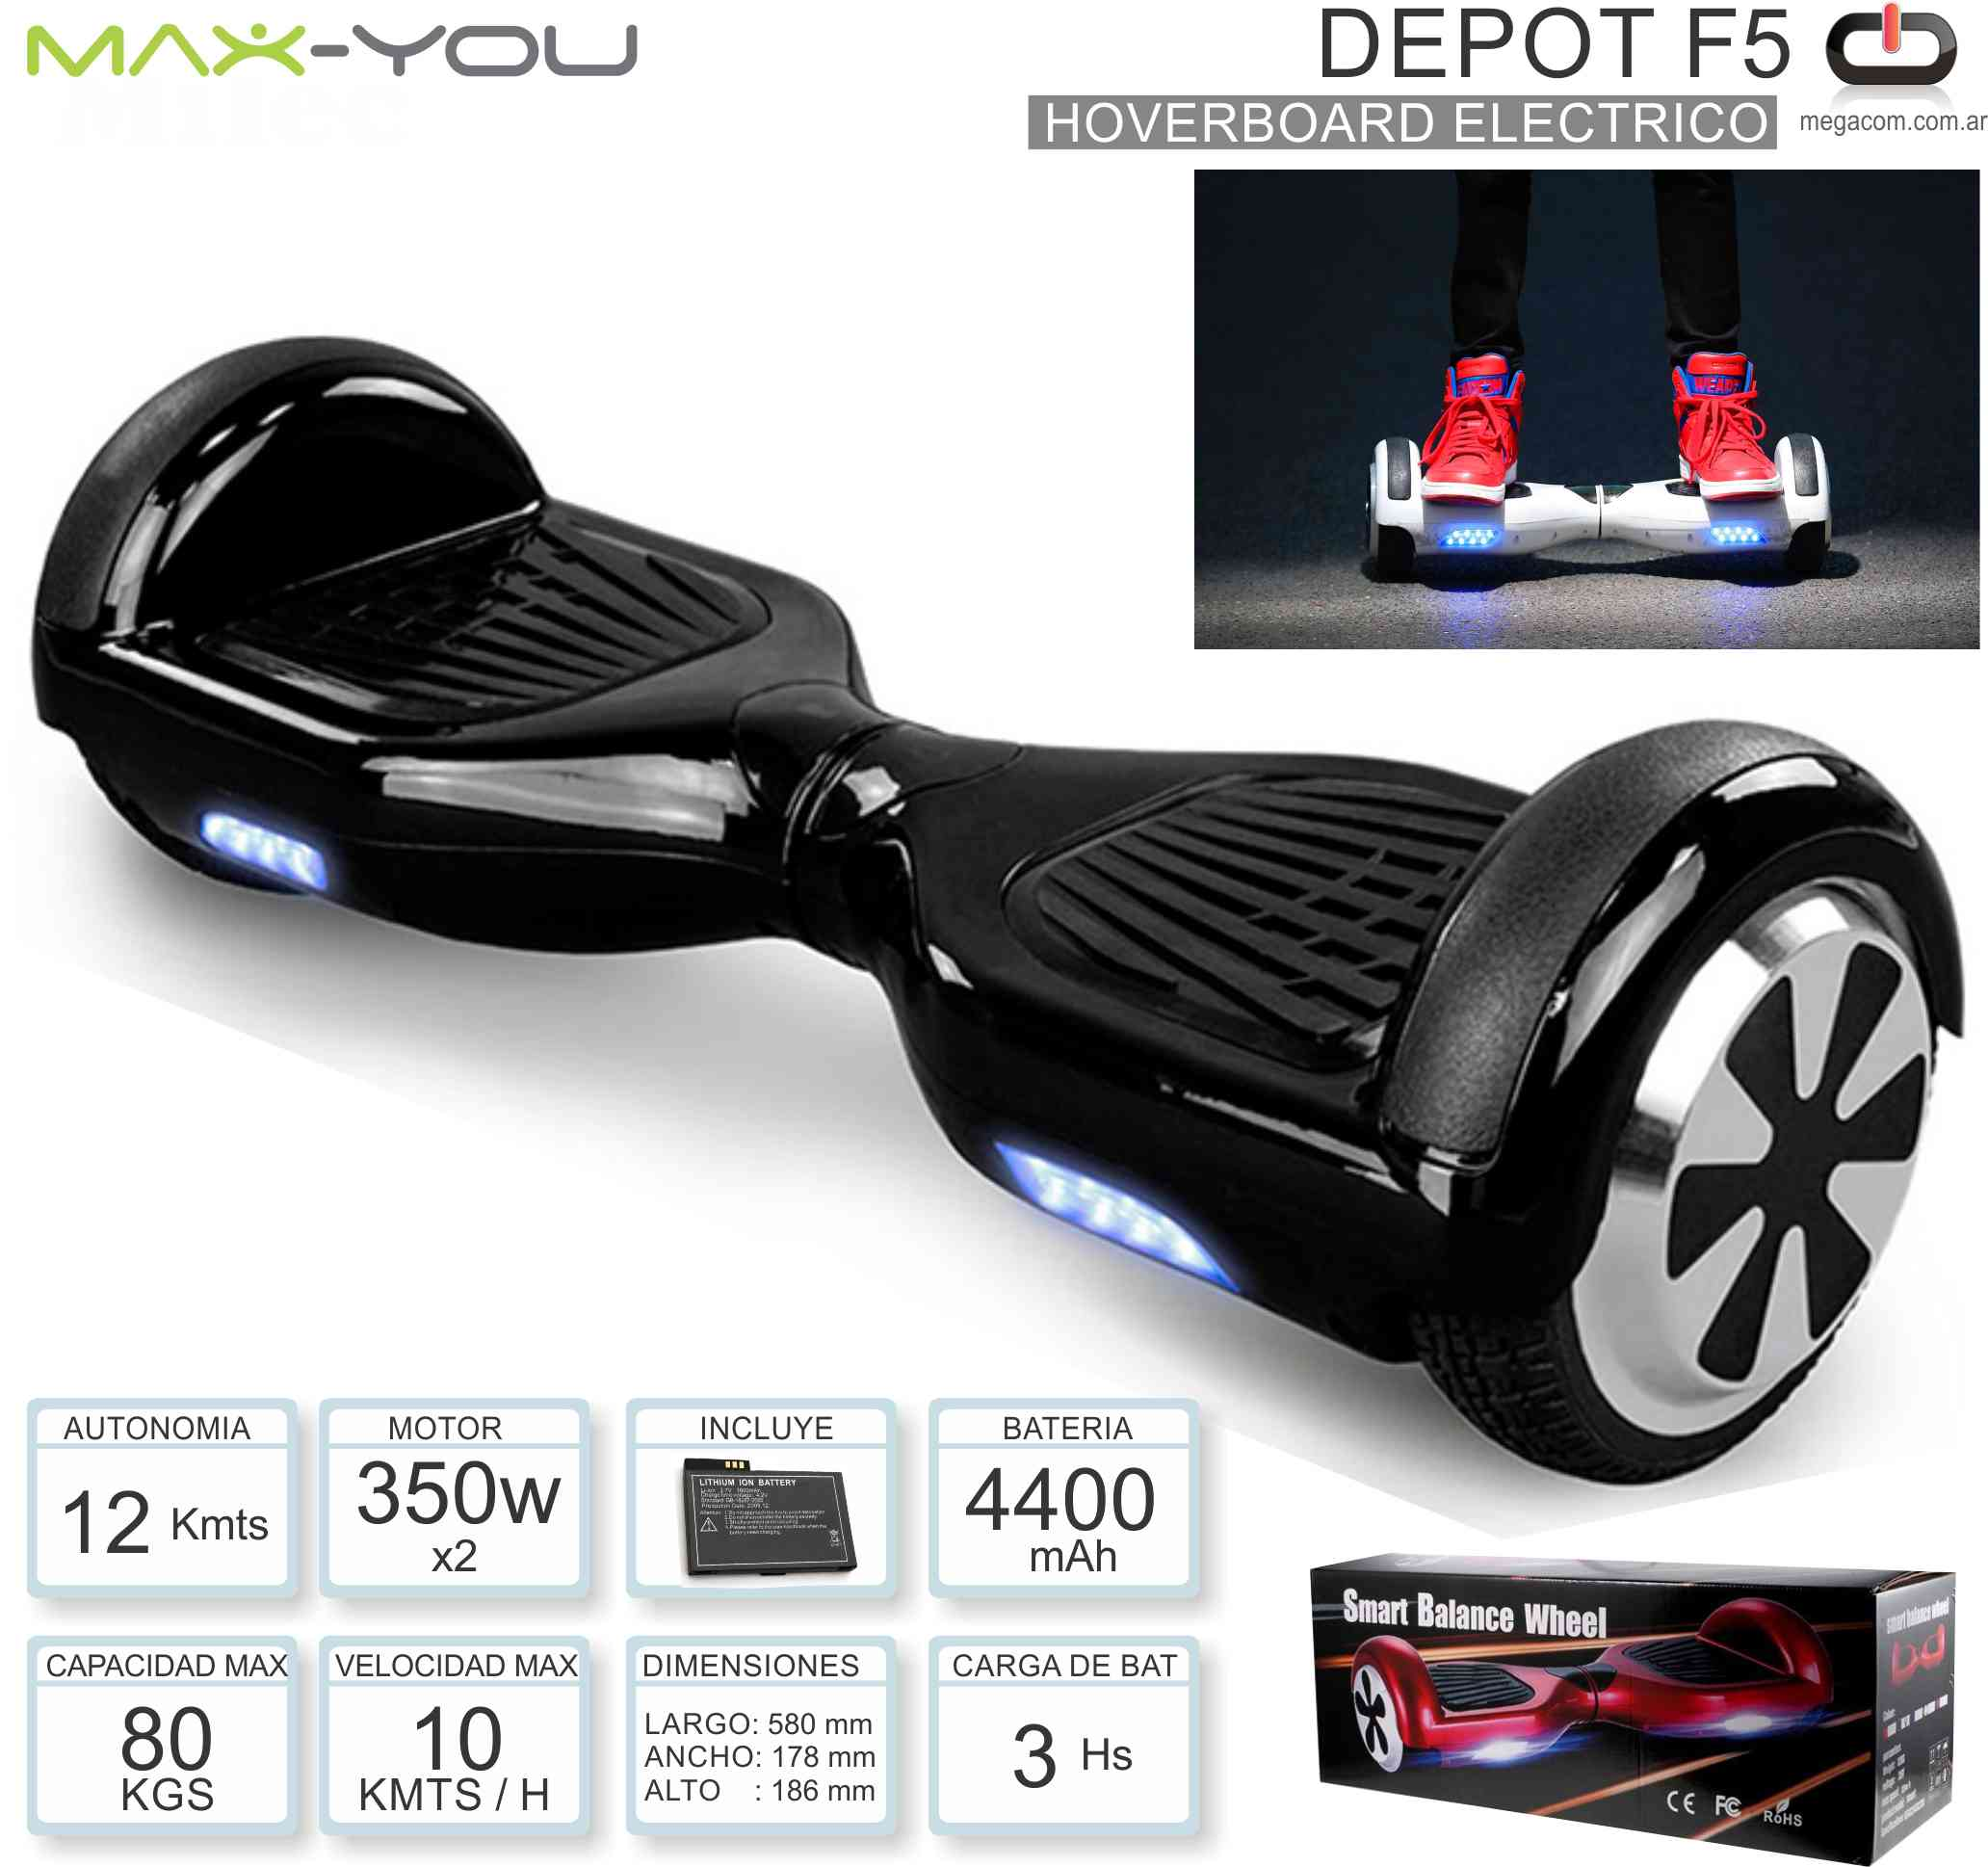 Hoverboard Electrico MAXYOU DEPOT F5 Negro